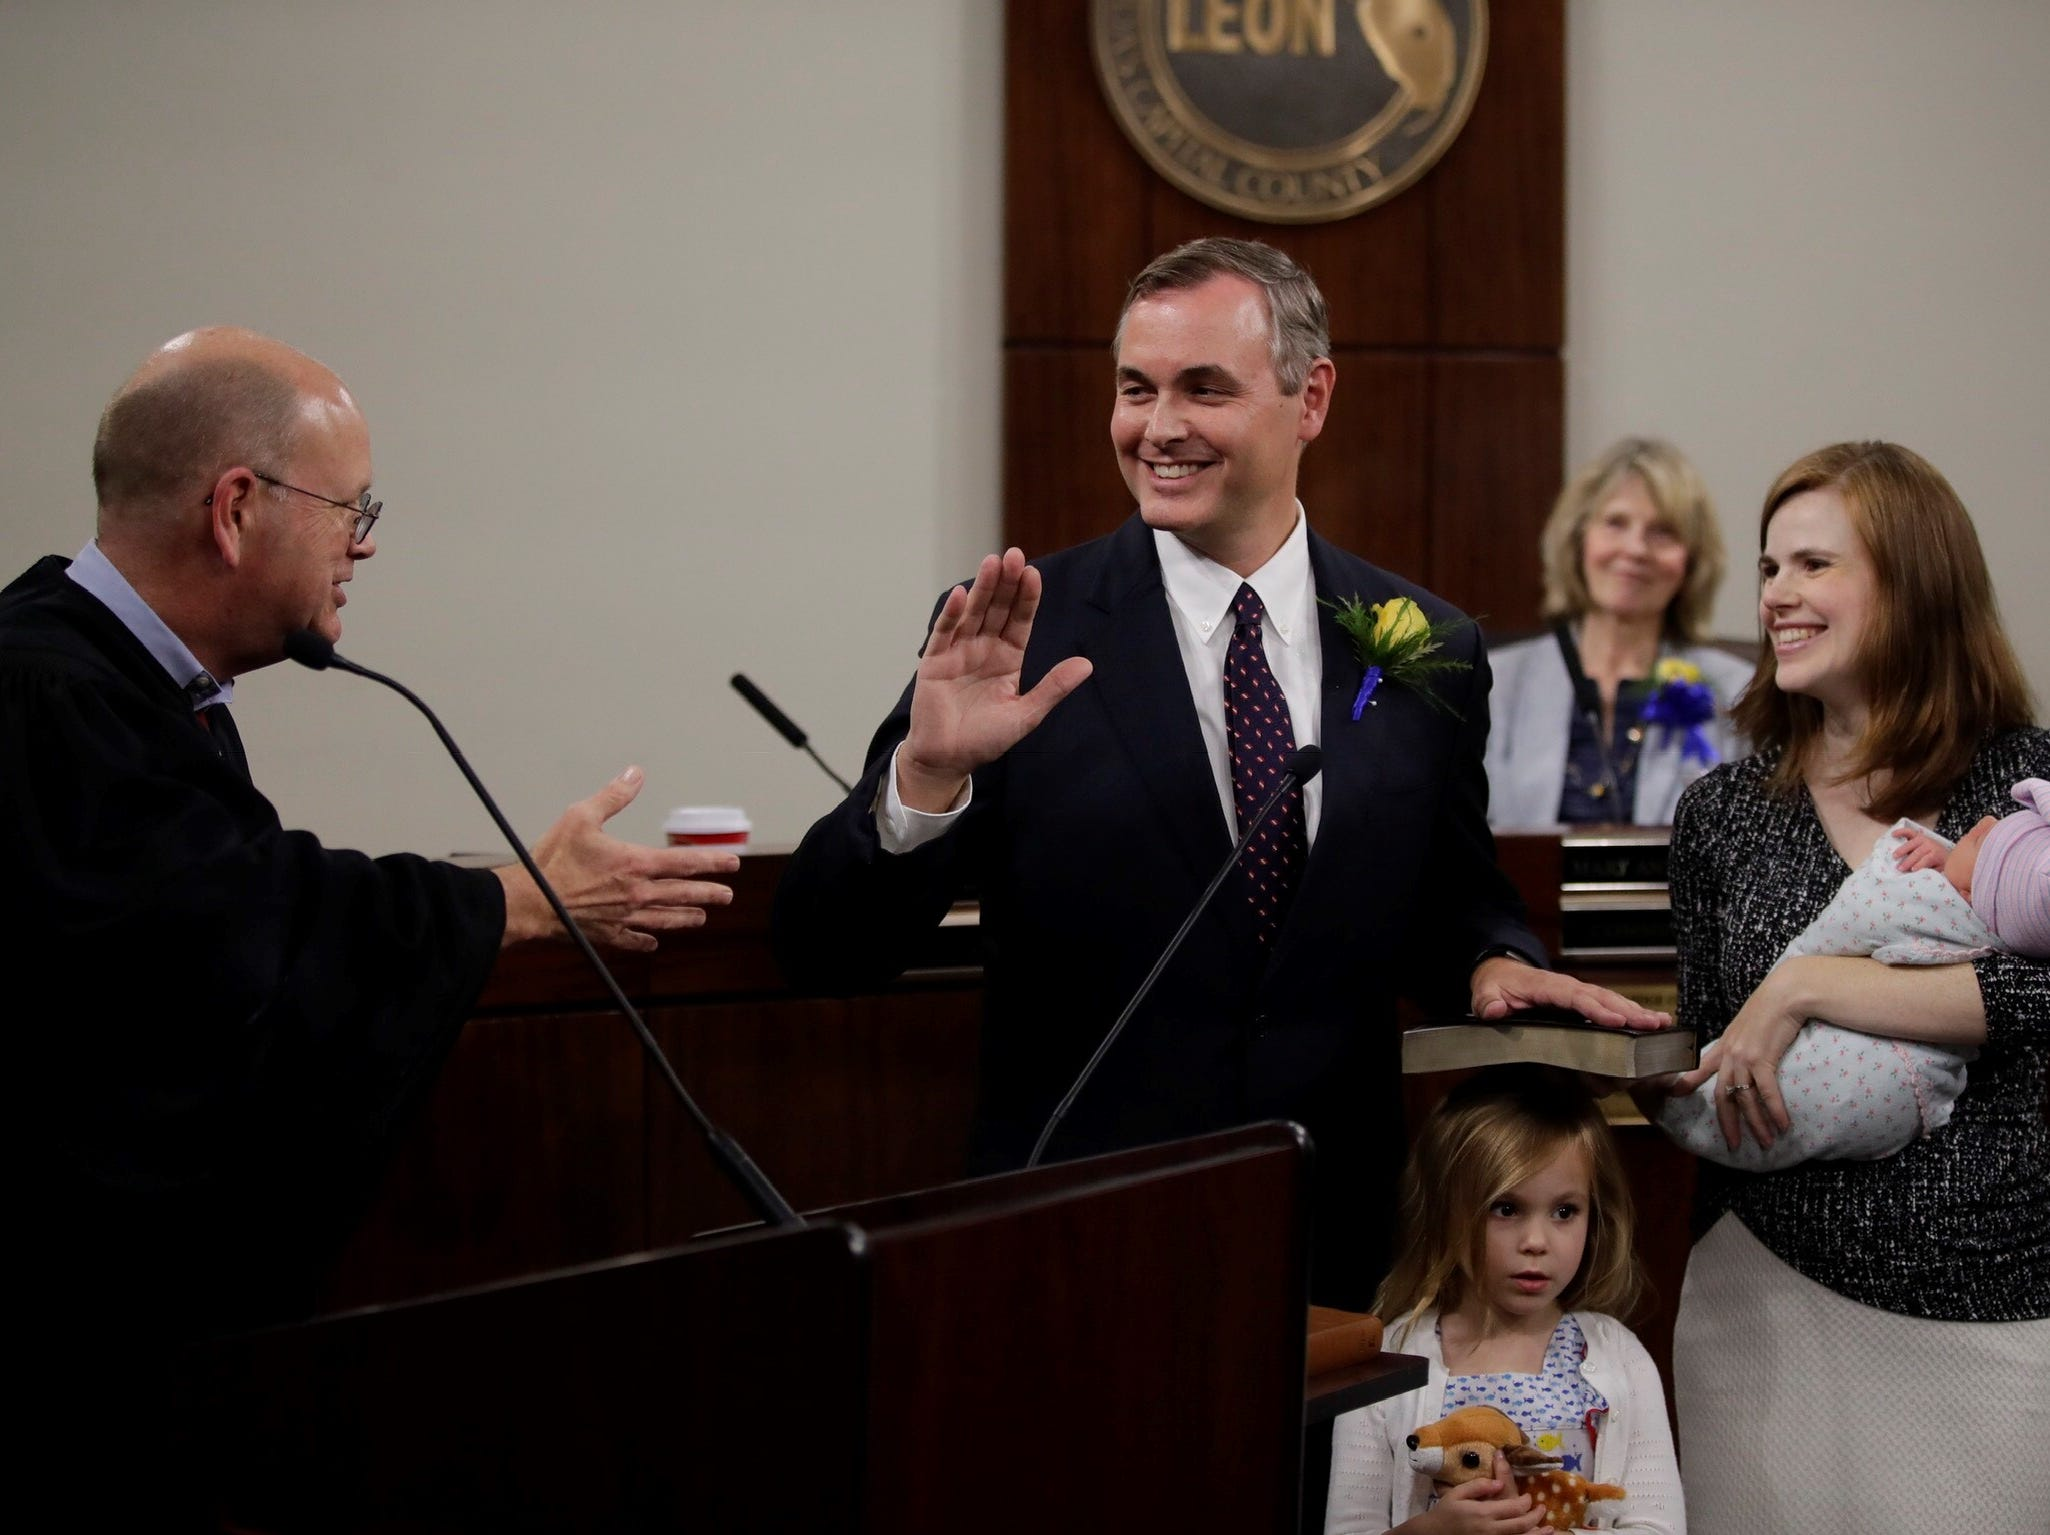 Rick Minor takes the oath of office as Leon County commissioner for District 3 on Tuesday, Nov. 20, 2018. Chief Circuit Judge Jonathan Sjostrom administered the oath of office as Minor's wife Jessica Lowe-Minor holds the family's Bible.